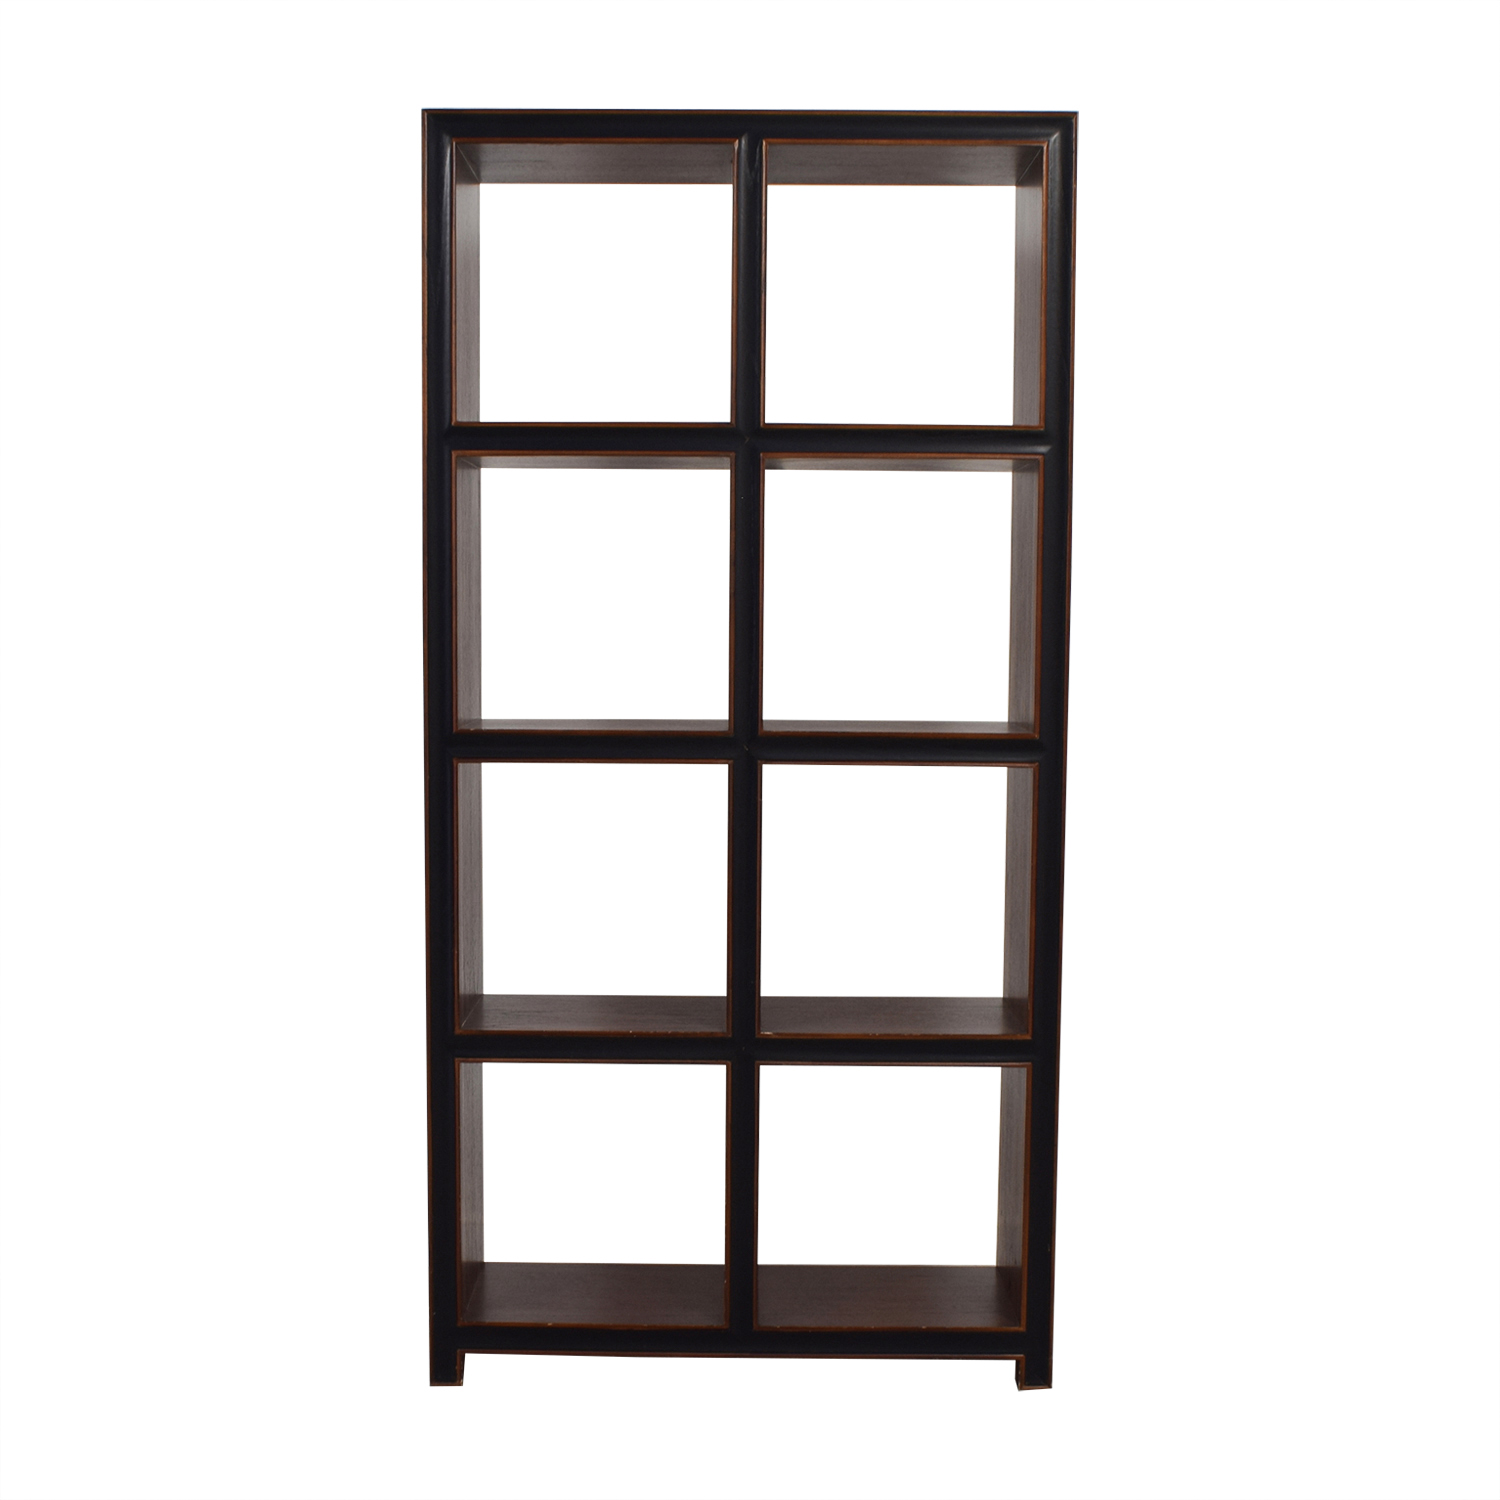 Crate & Barrel Wood Bookcase / Storage